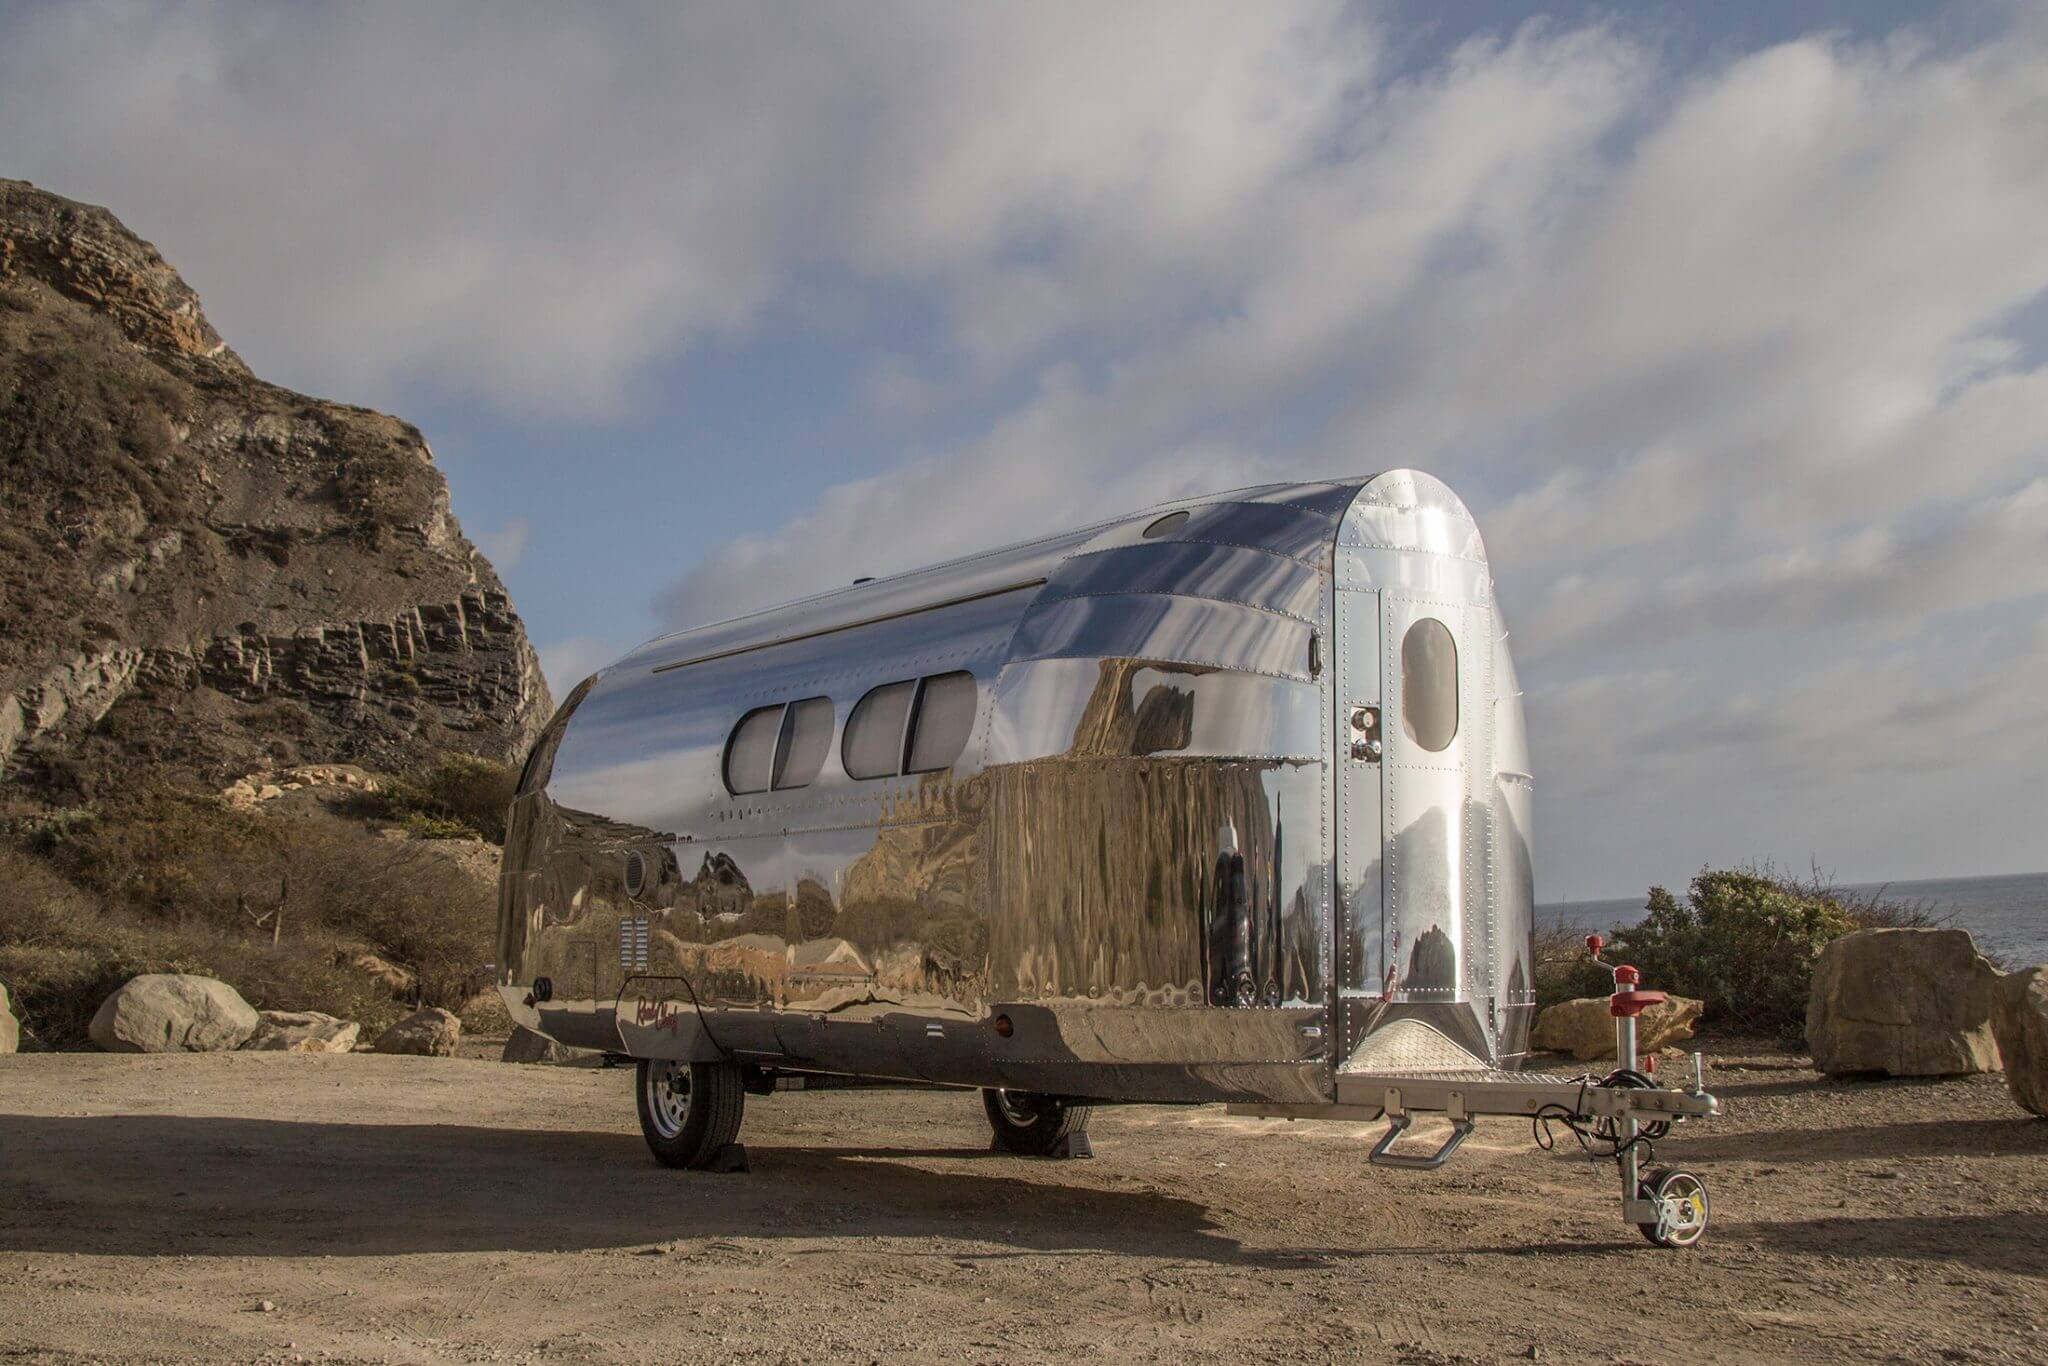 I first looked at the Road Chief website after seeing the high praise in the Wall Street Journal.